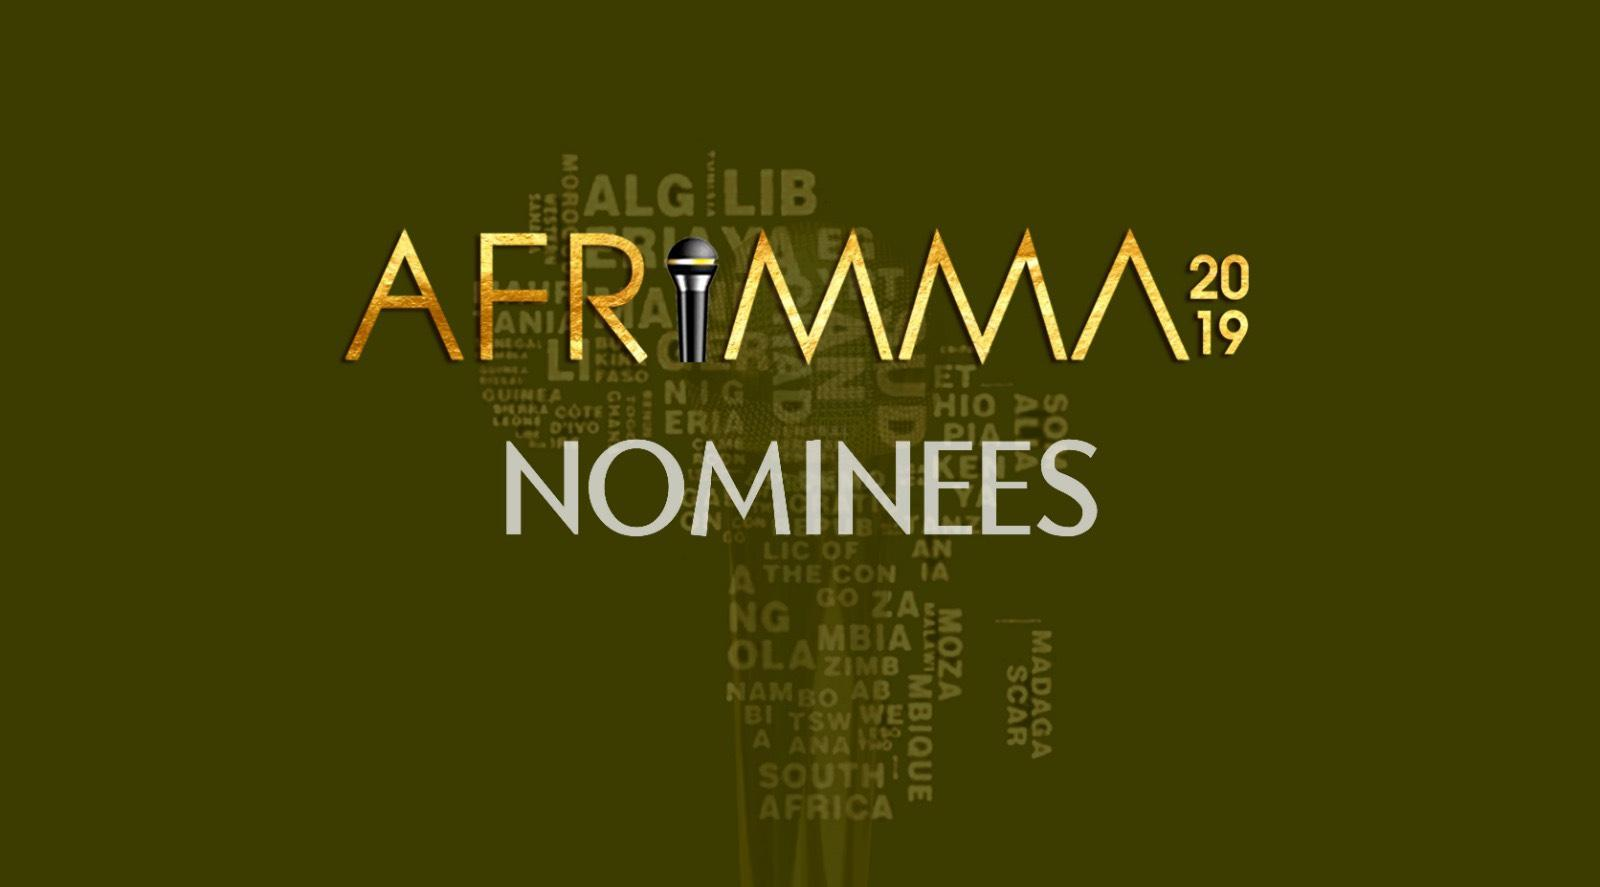 The 'African Giant' Burna Boy Earns Multiple Nominations at AFRIMMA 2019 Awards & Music Festival